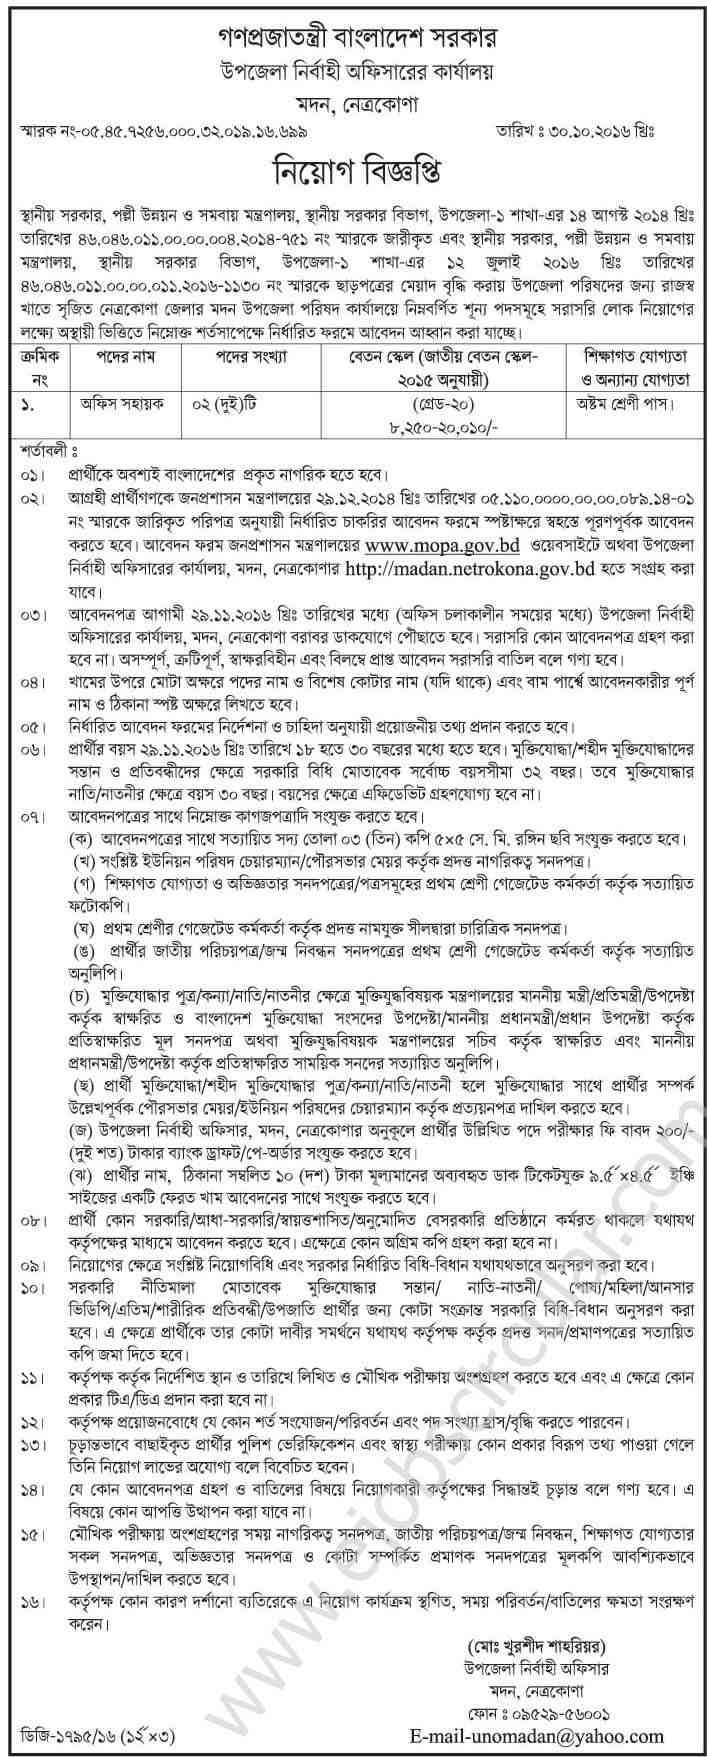 Ministry of Chief Executive Officer Recruitment